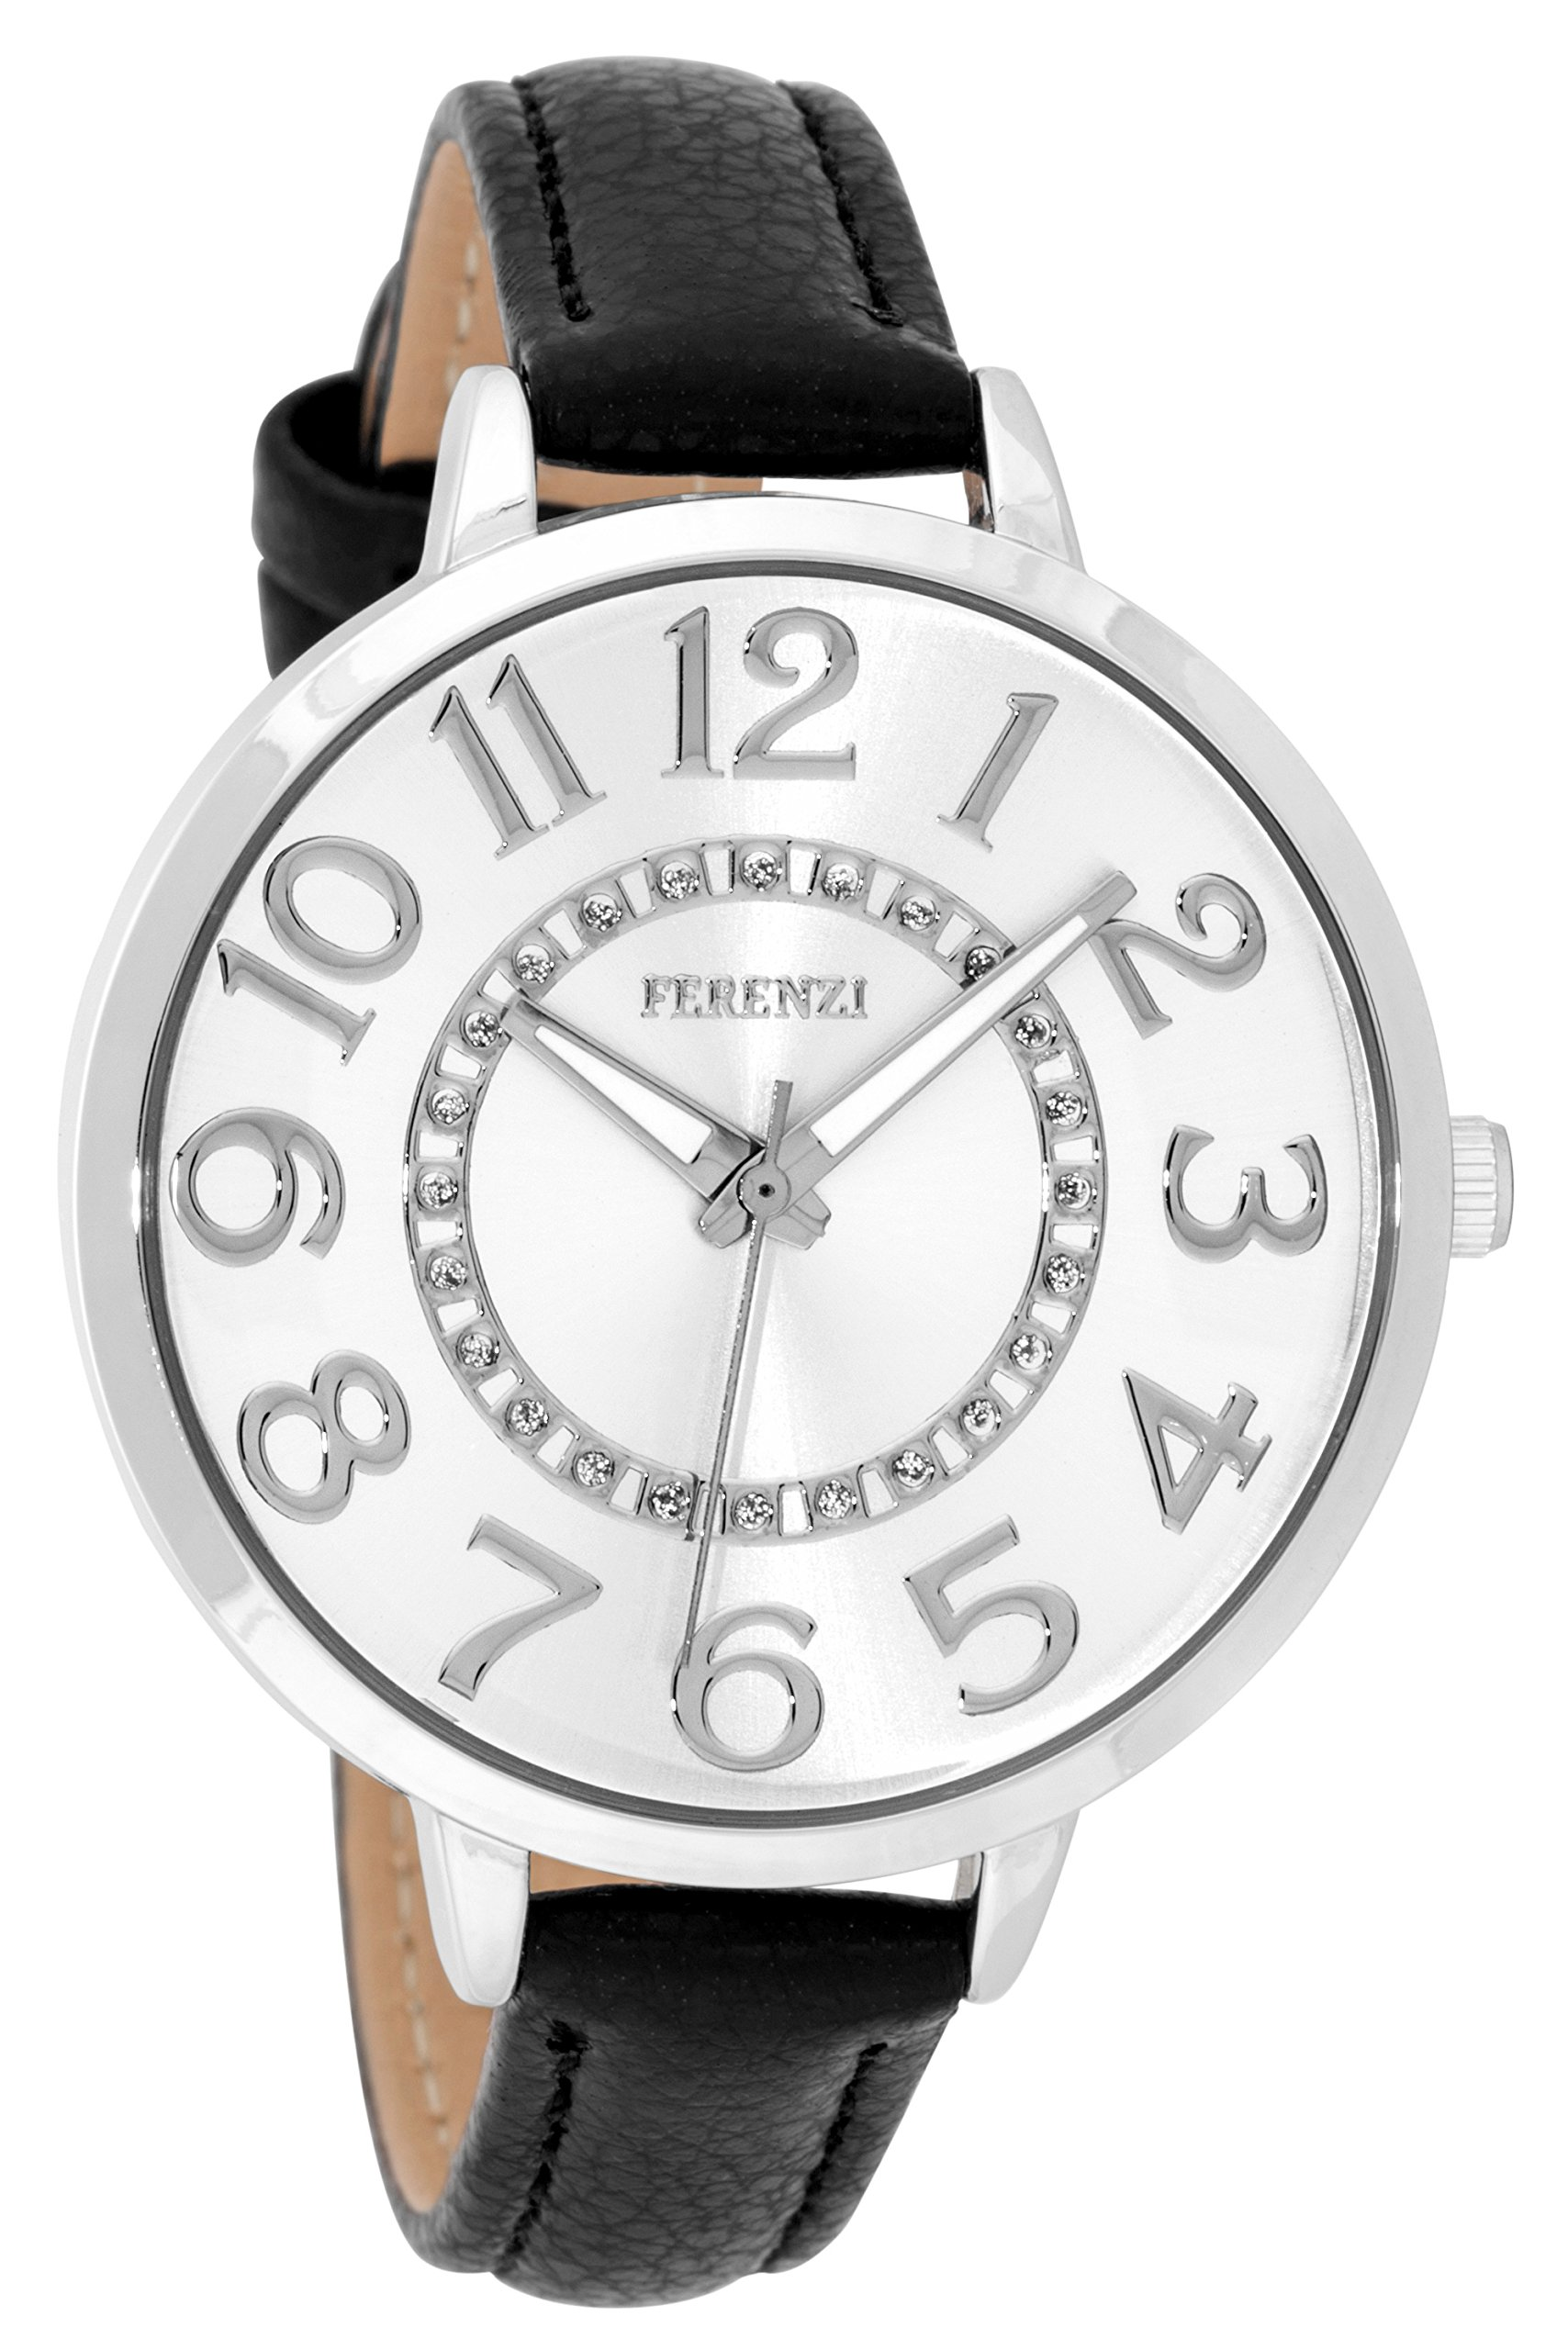 Women's Watches By Ferenzi - Classic Silver-Tone Sunray Dial With Black Padded PU Leather Band Watch - Make Every Second Count - FZ17707